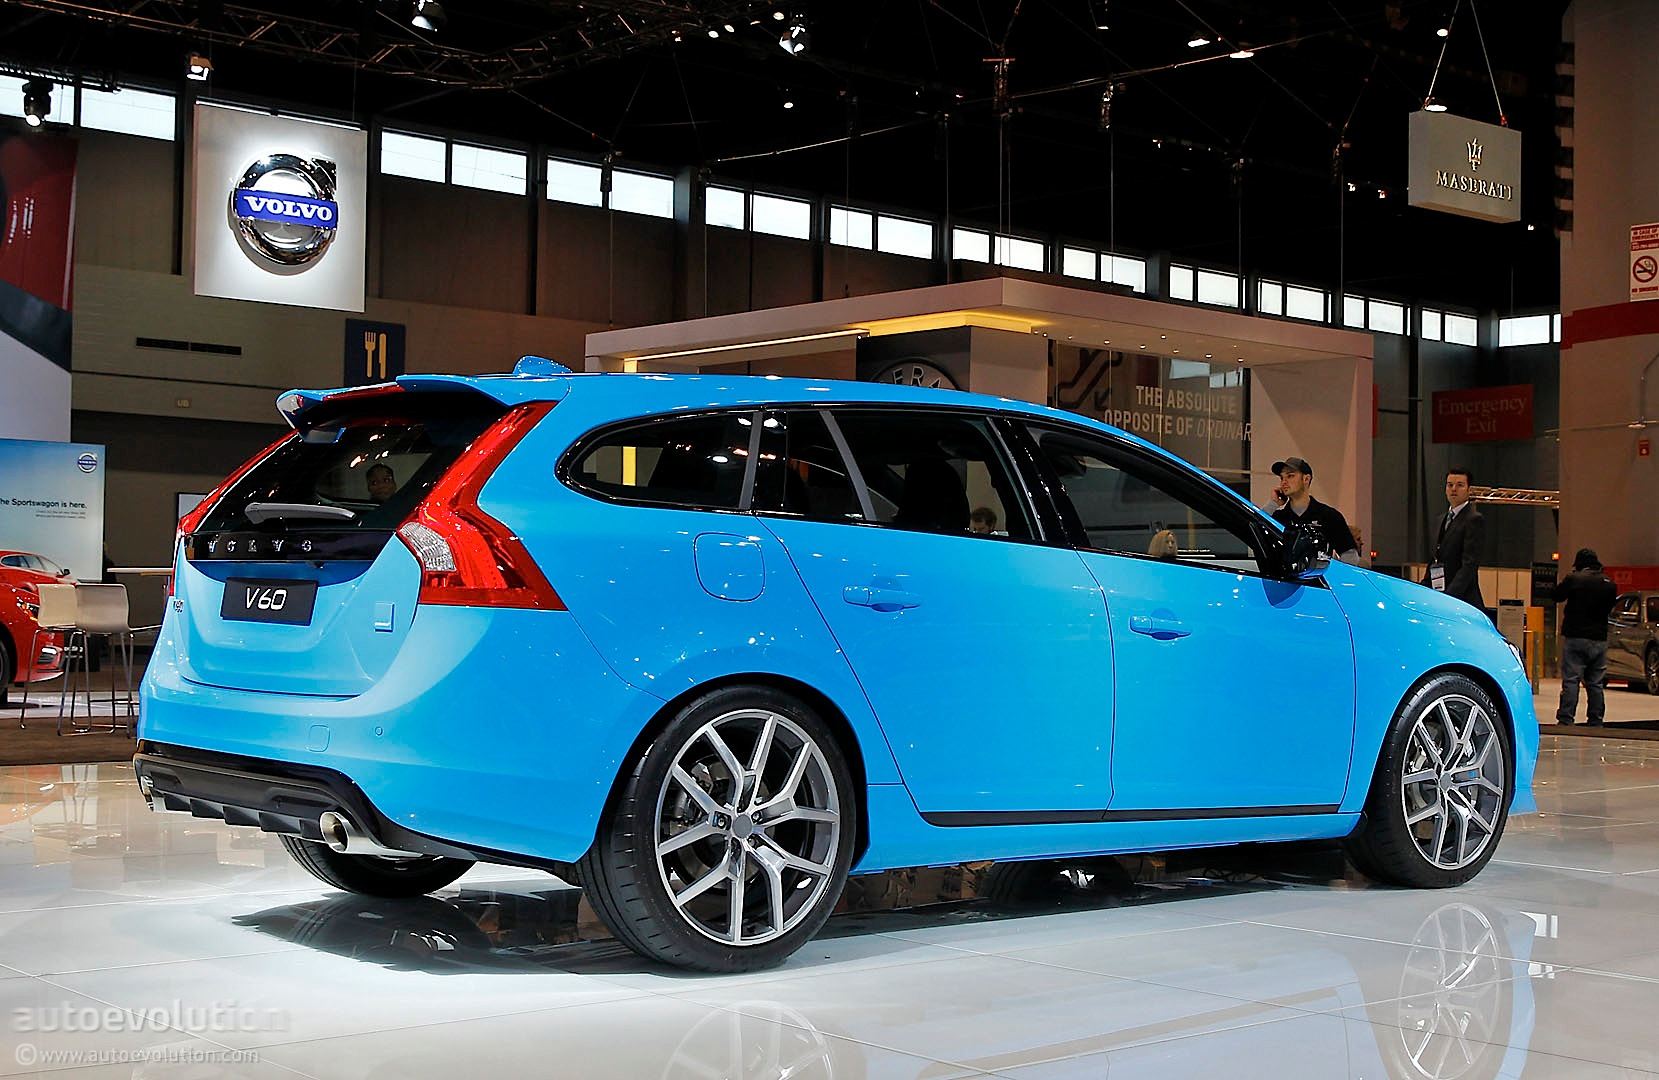 Junk Cars Chicago >> Volvo V60 Polestar Is a Blue Wagon in Chicago [Live Photo] - autoevolution